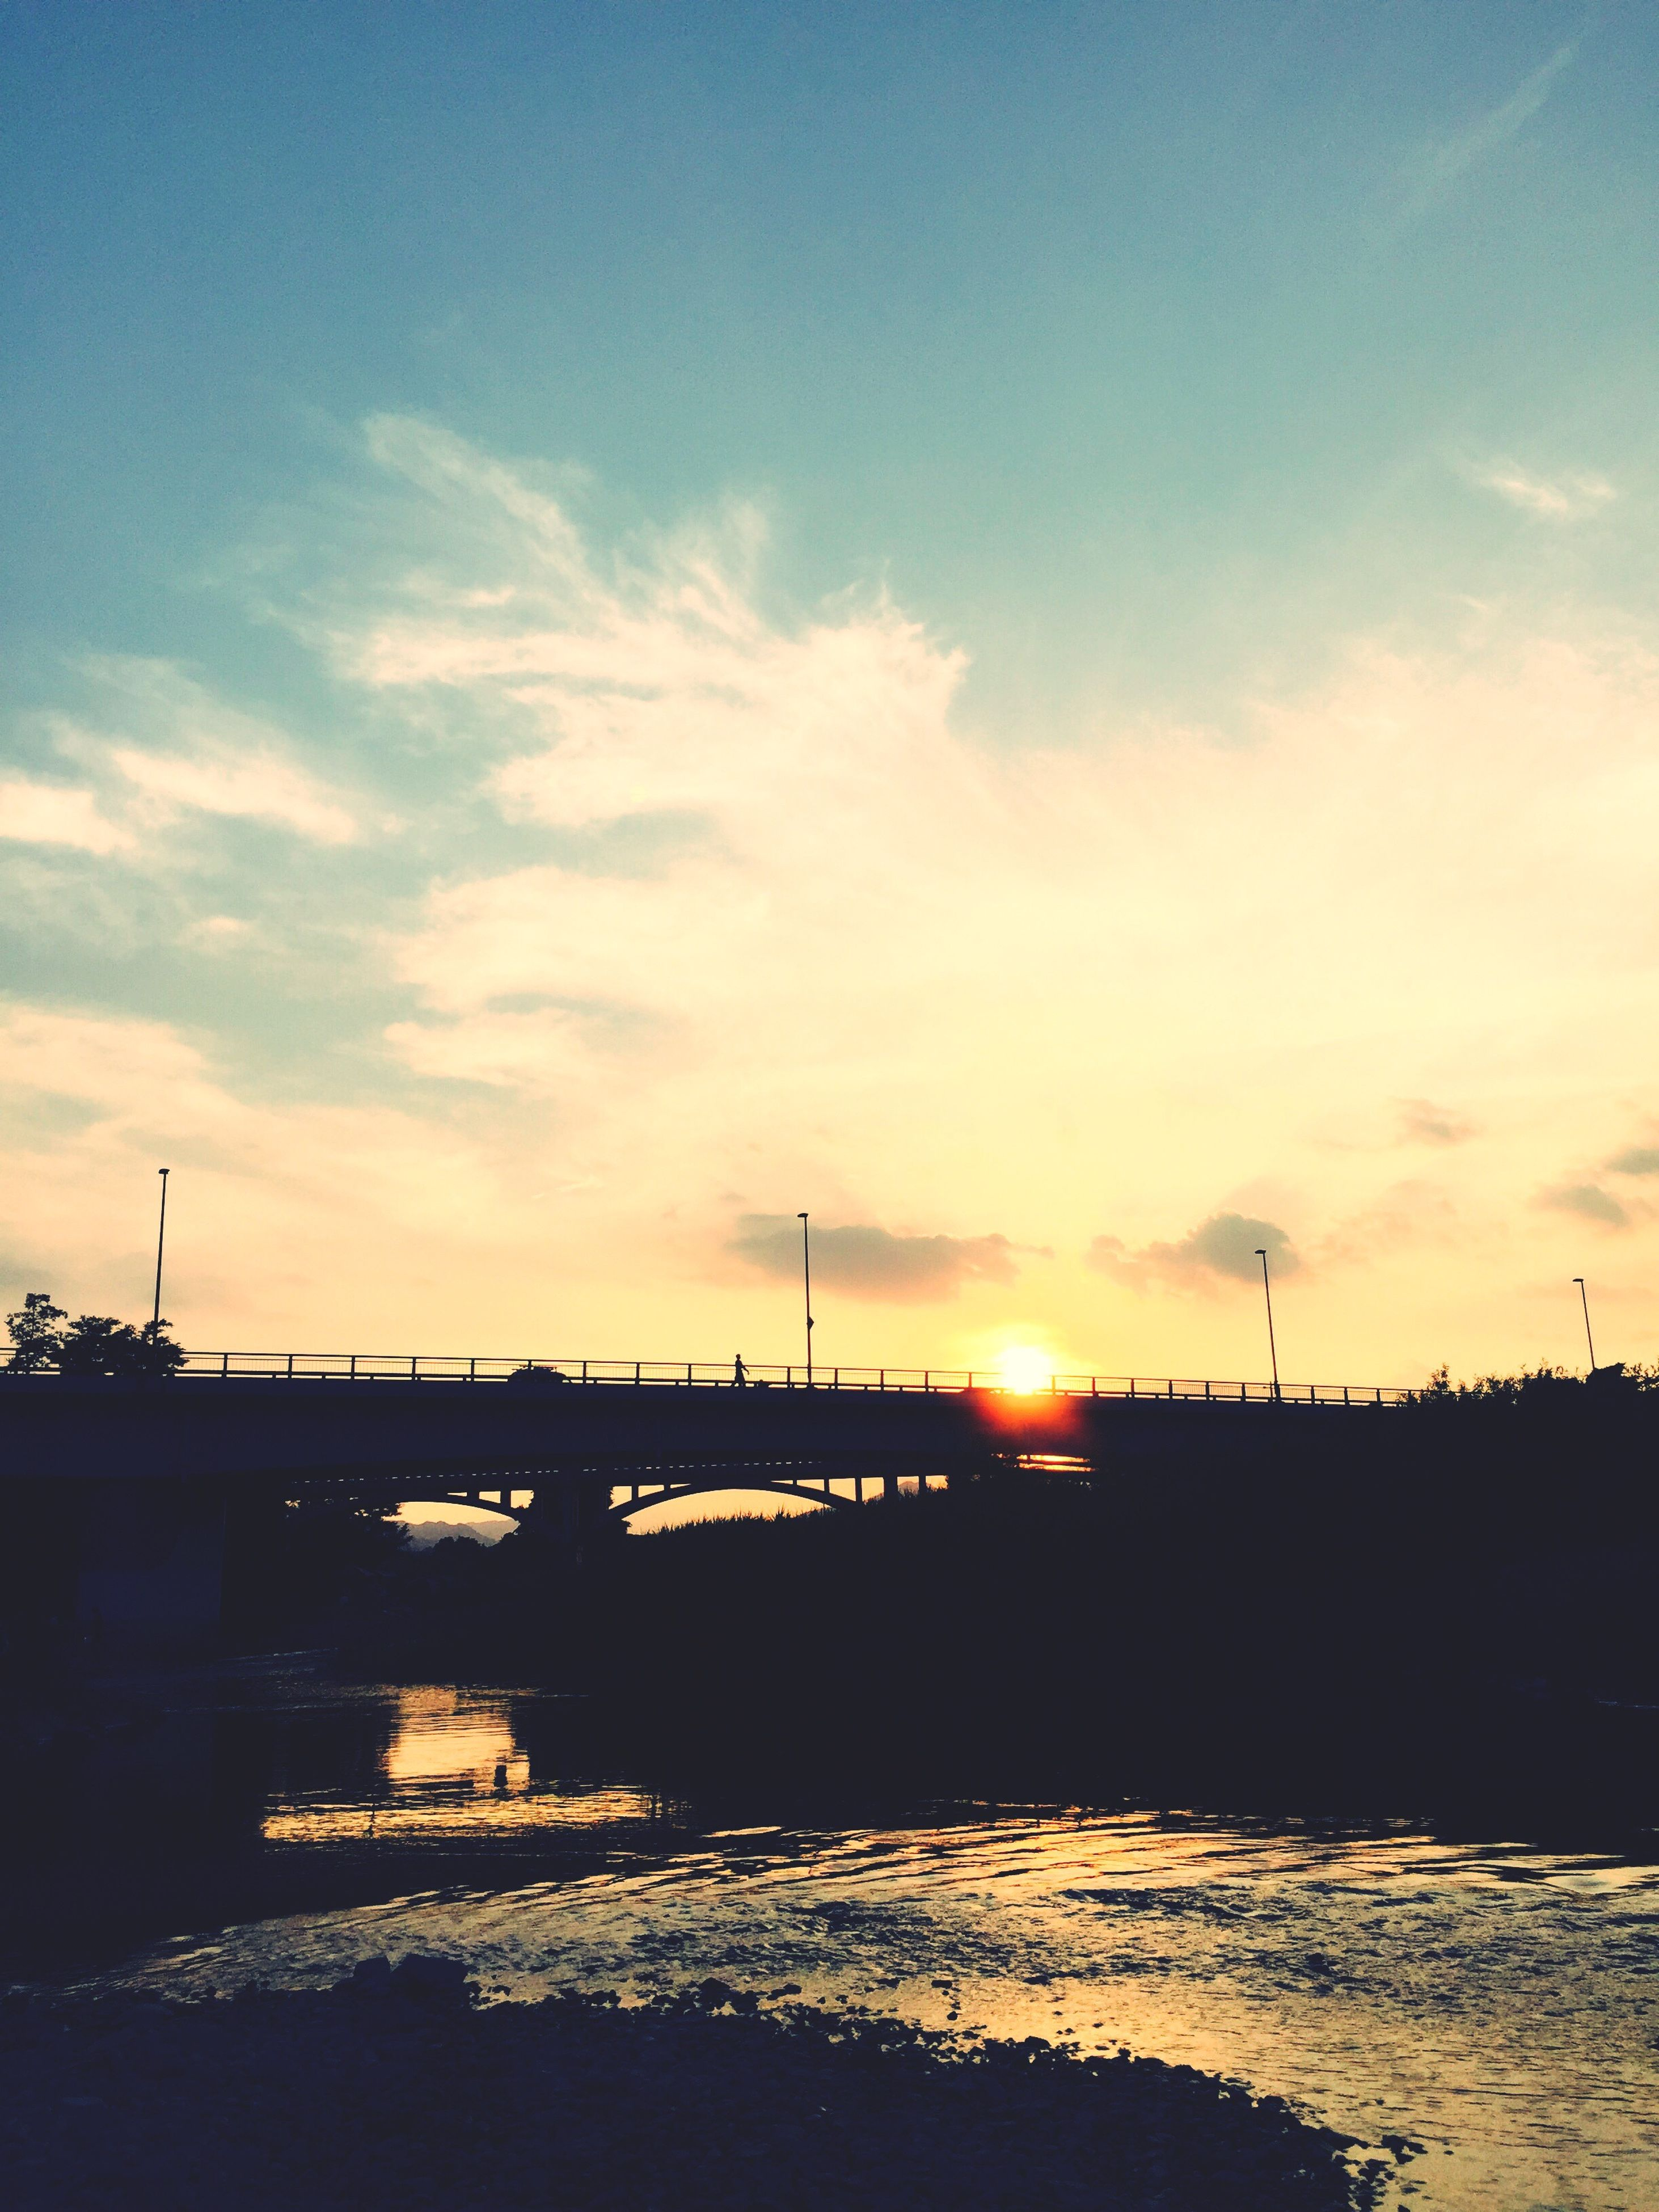 water, river, bridge - man made structure, sunset, connection, waterfront, architecture, built structure, calm, sky, cloud, scenics, bridge, tranquil scene, engineering, orange color, nature, beauty in nature, outdoors, tranquility, ocean, outline, no people, riverbank